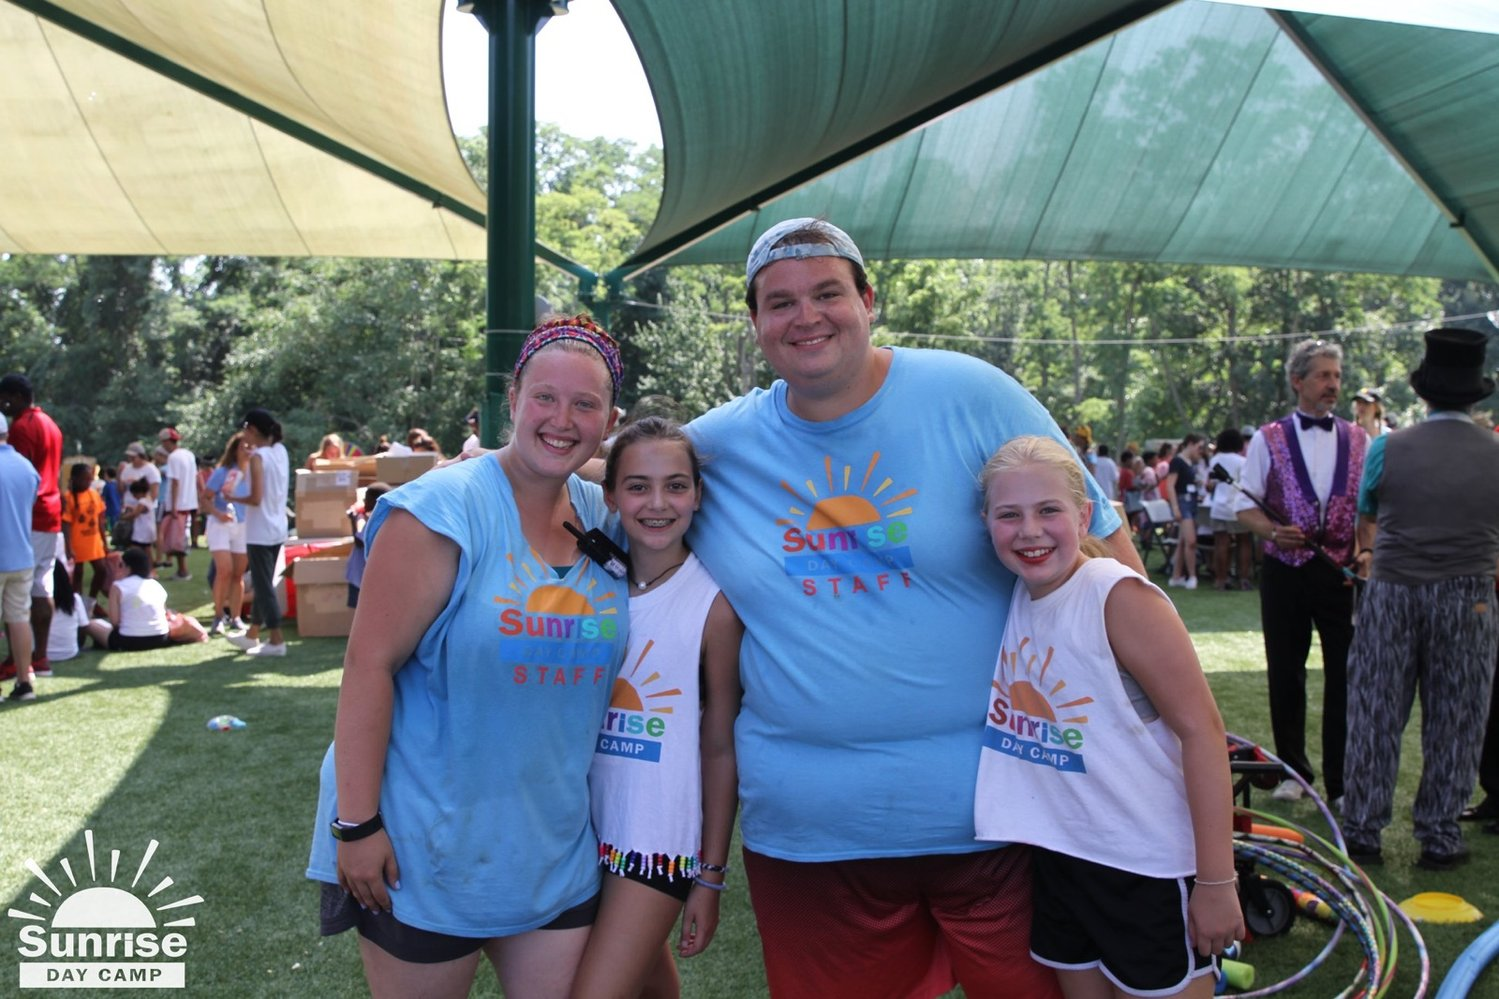 Levy worked at Sunrise Association Day Camp in Wheatley Heights with his sister, Jessica, far left. The two enjoyed a summer day with campers Seraphina, left, and Catherine O'Brien.